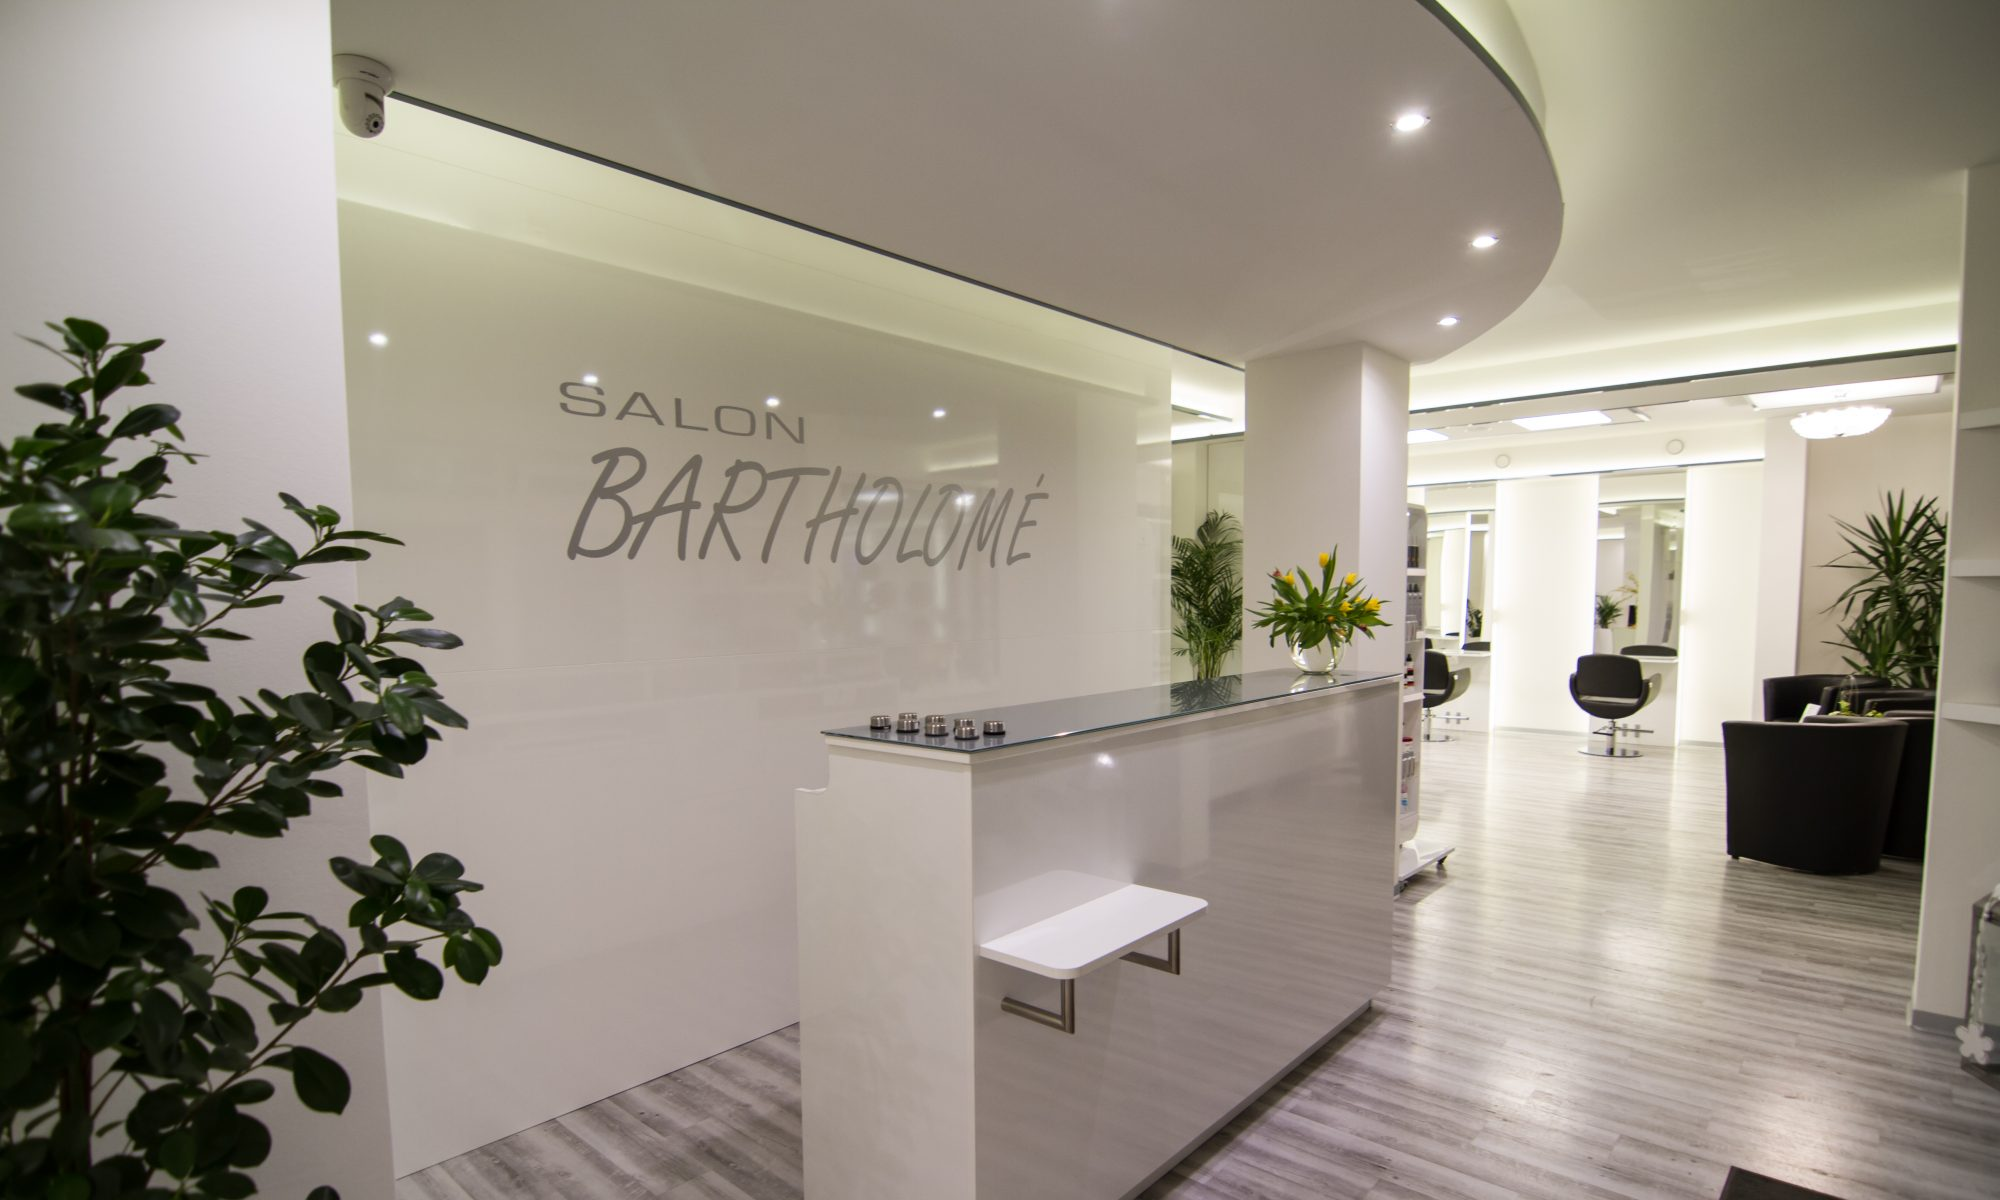 Salon Bartholomé